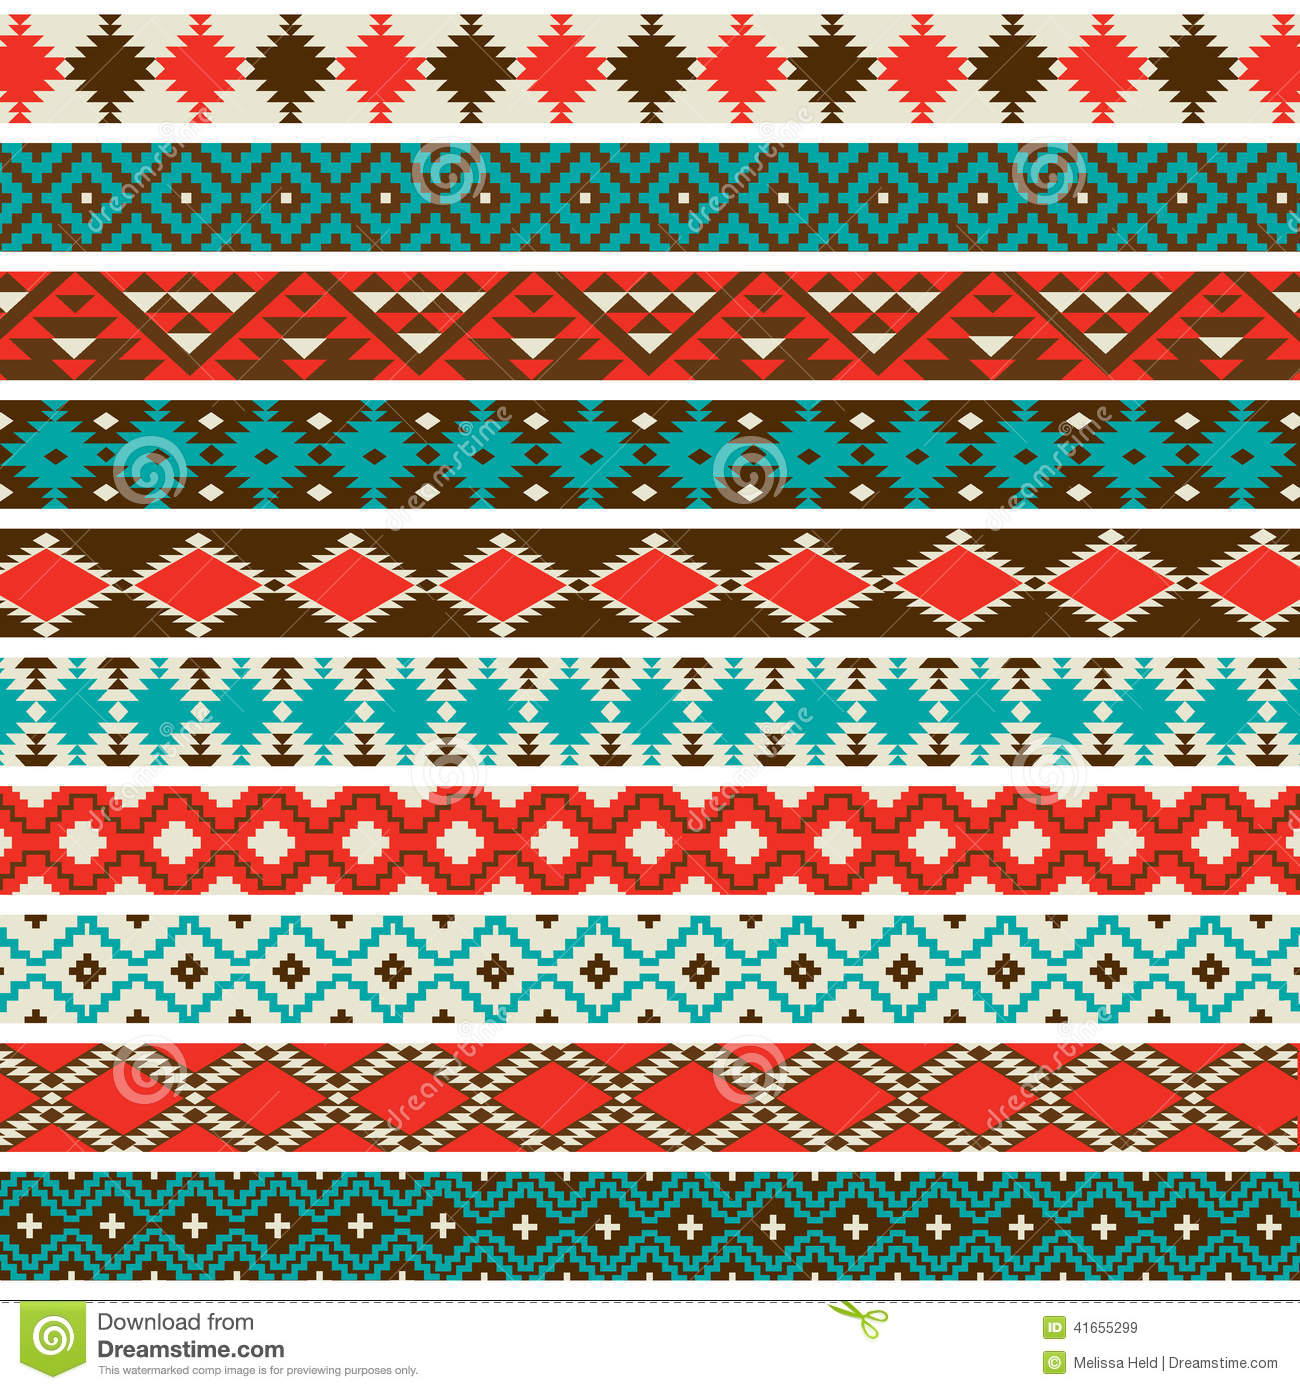 native art wallpaper border - photo #27